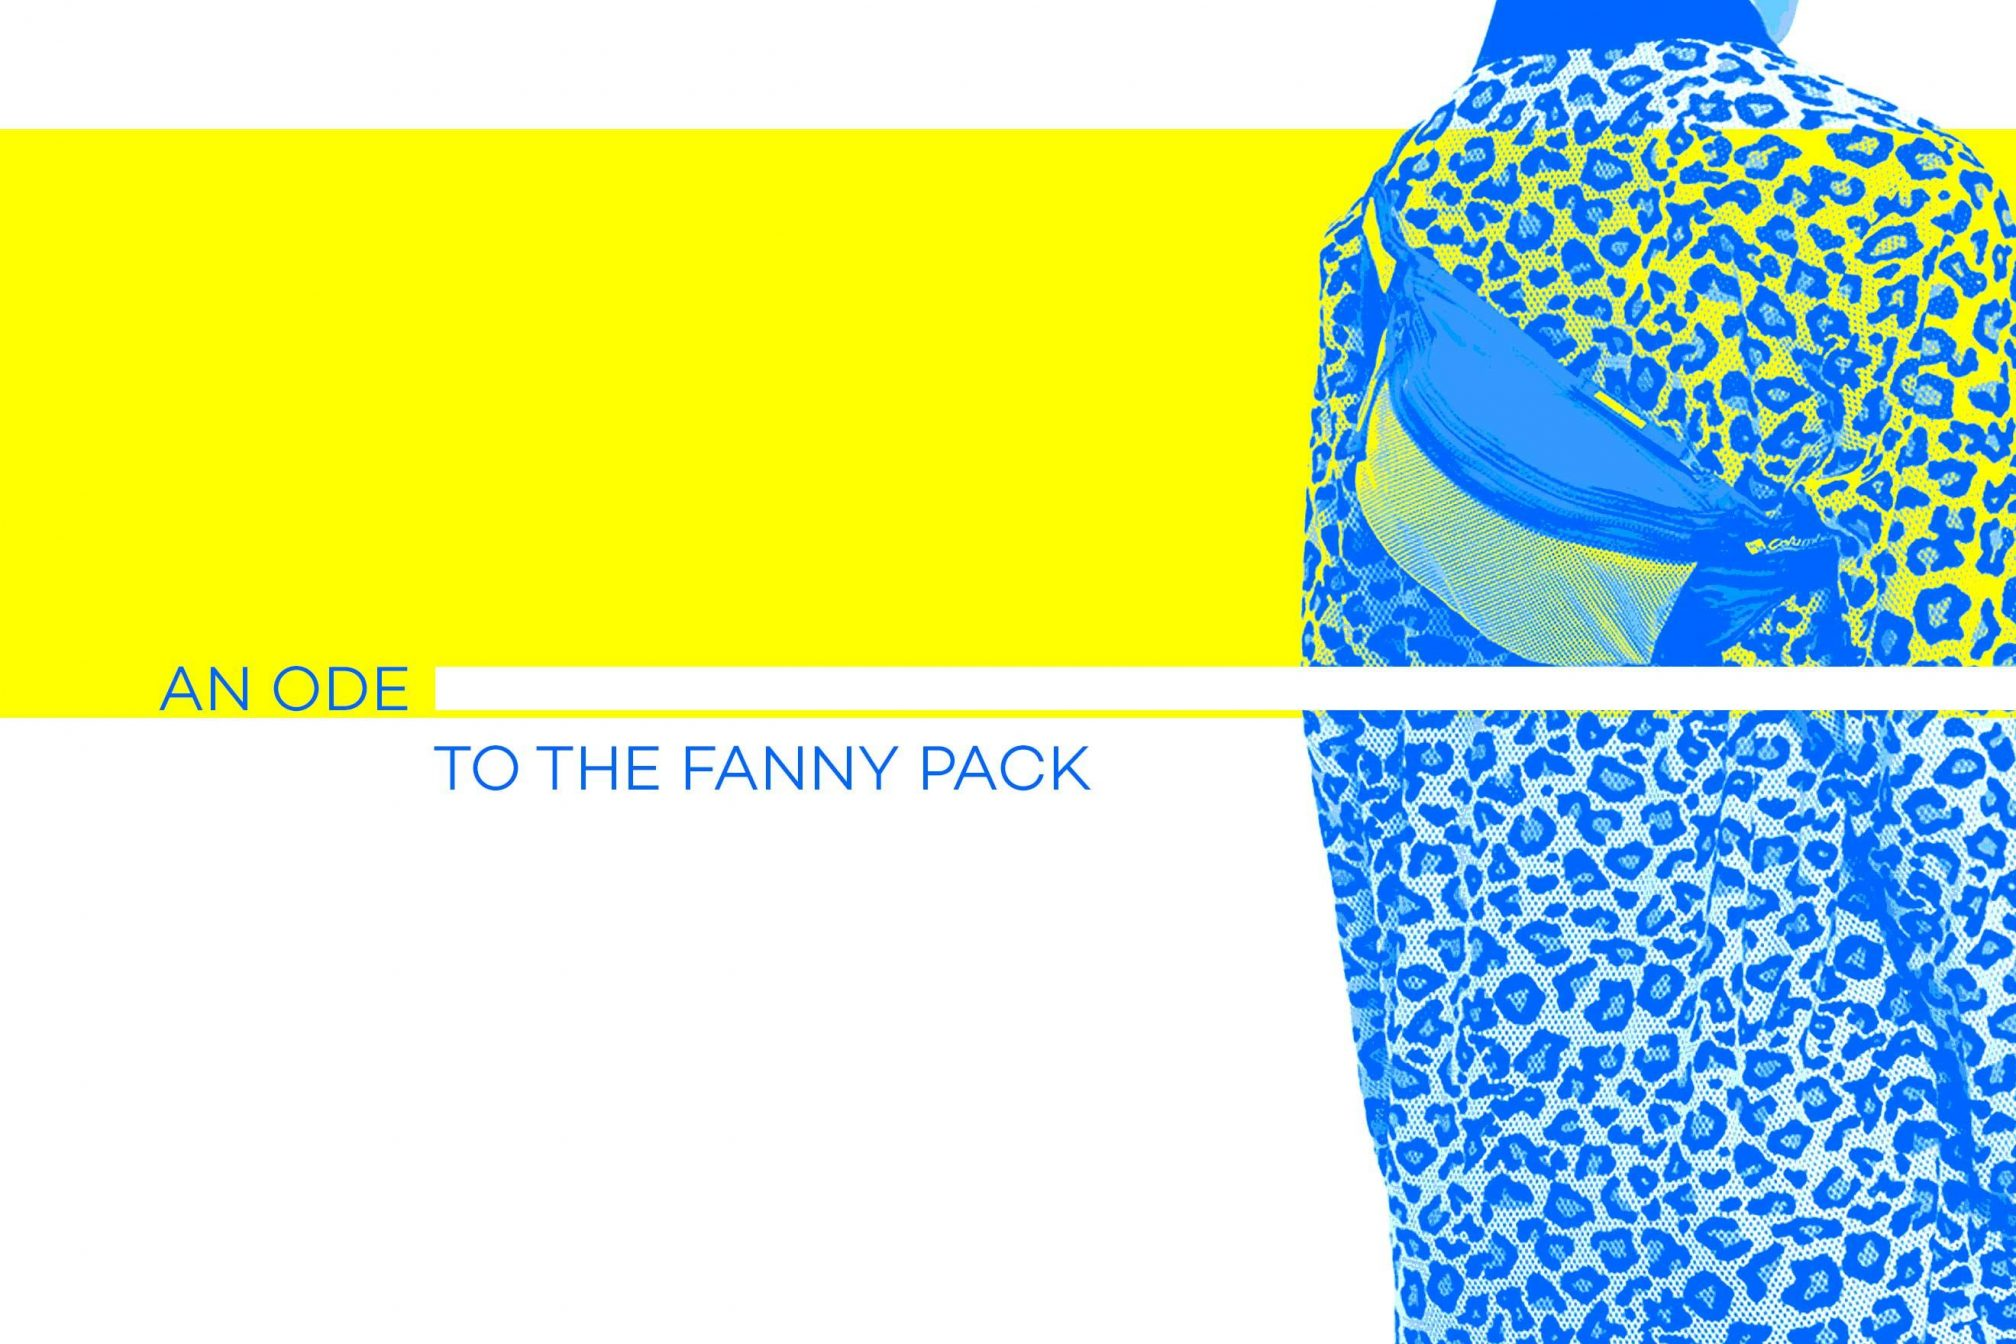 An ode to the fanny pack, a 90's rave classic - Fashion - Mixmag